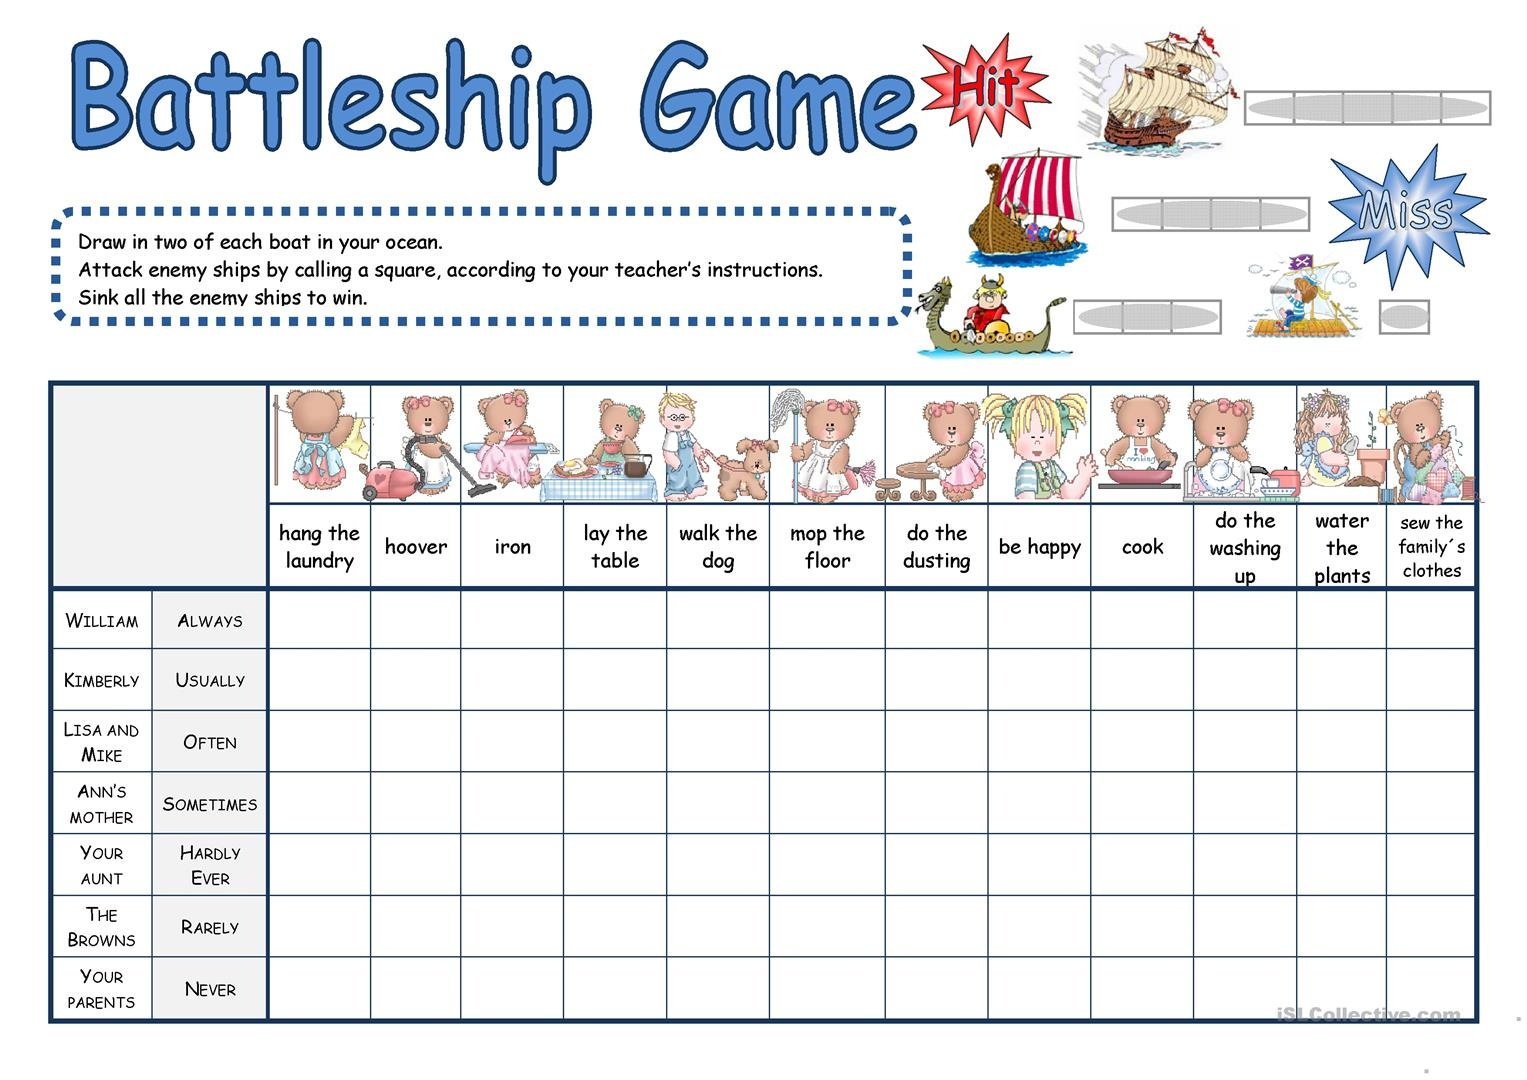 Battleship Game Worksheet - Free Esl Printable Worksheets Made - Free Printable Battleship Game